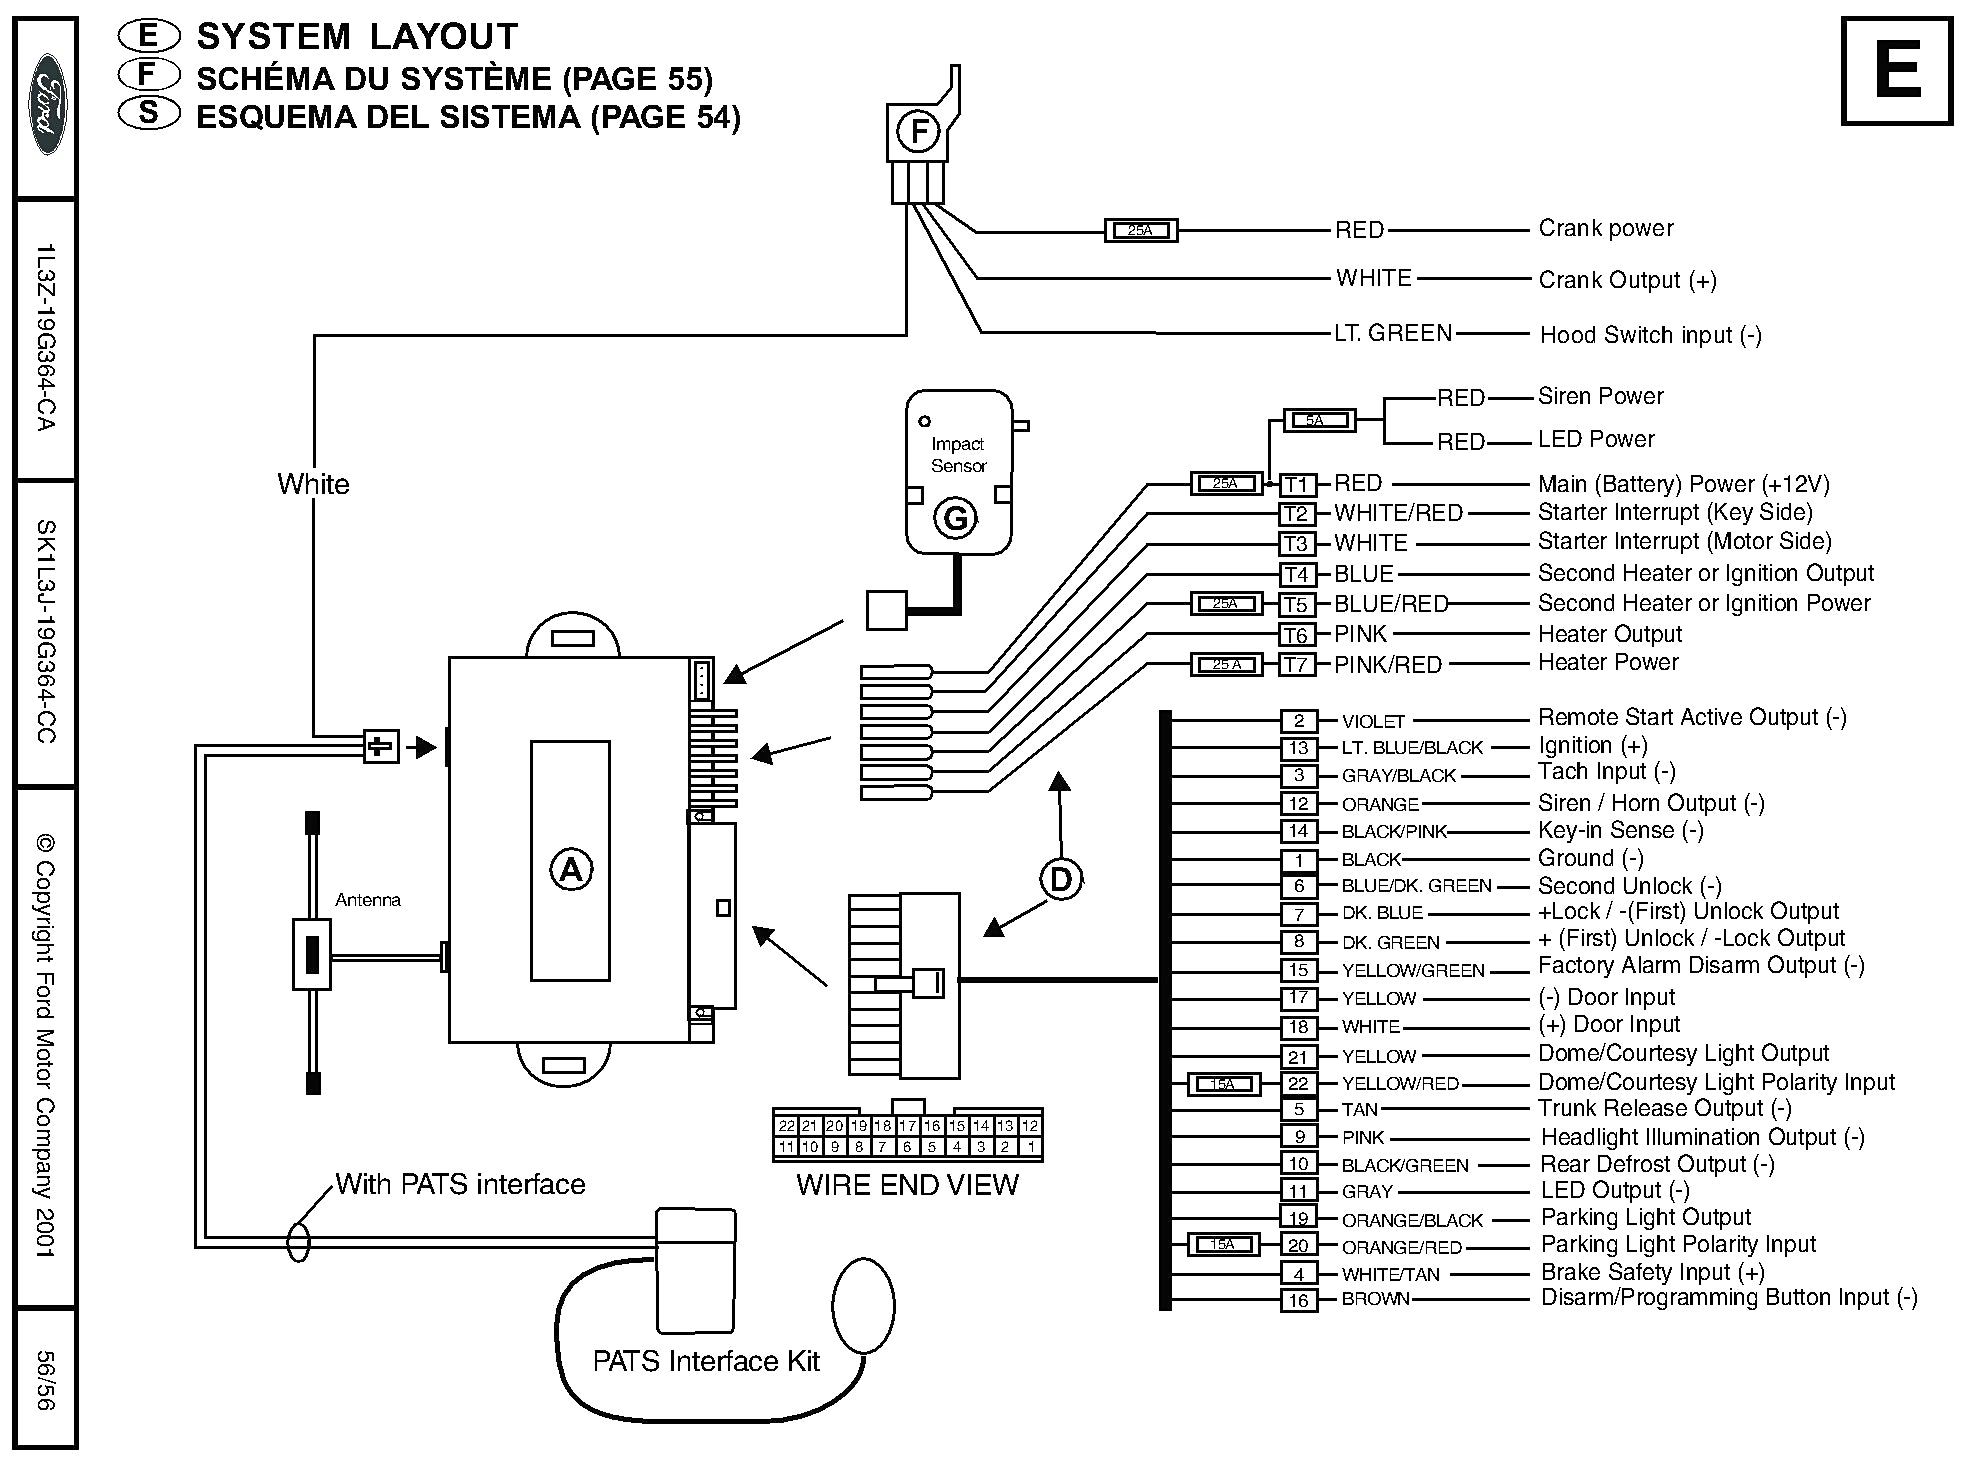 Digital Tachometer Circuit And Datasheet Mth6 Tacho Typical Wiring